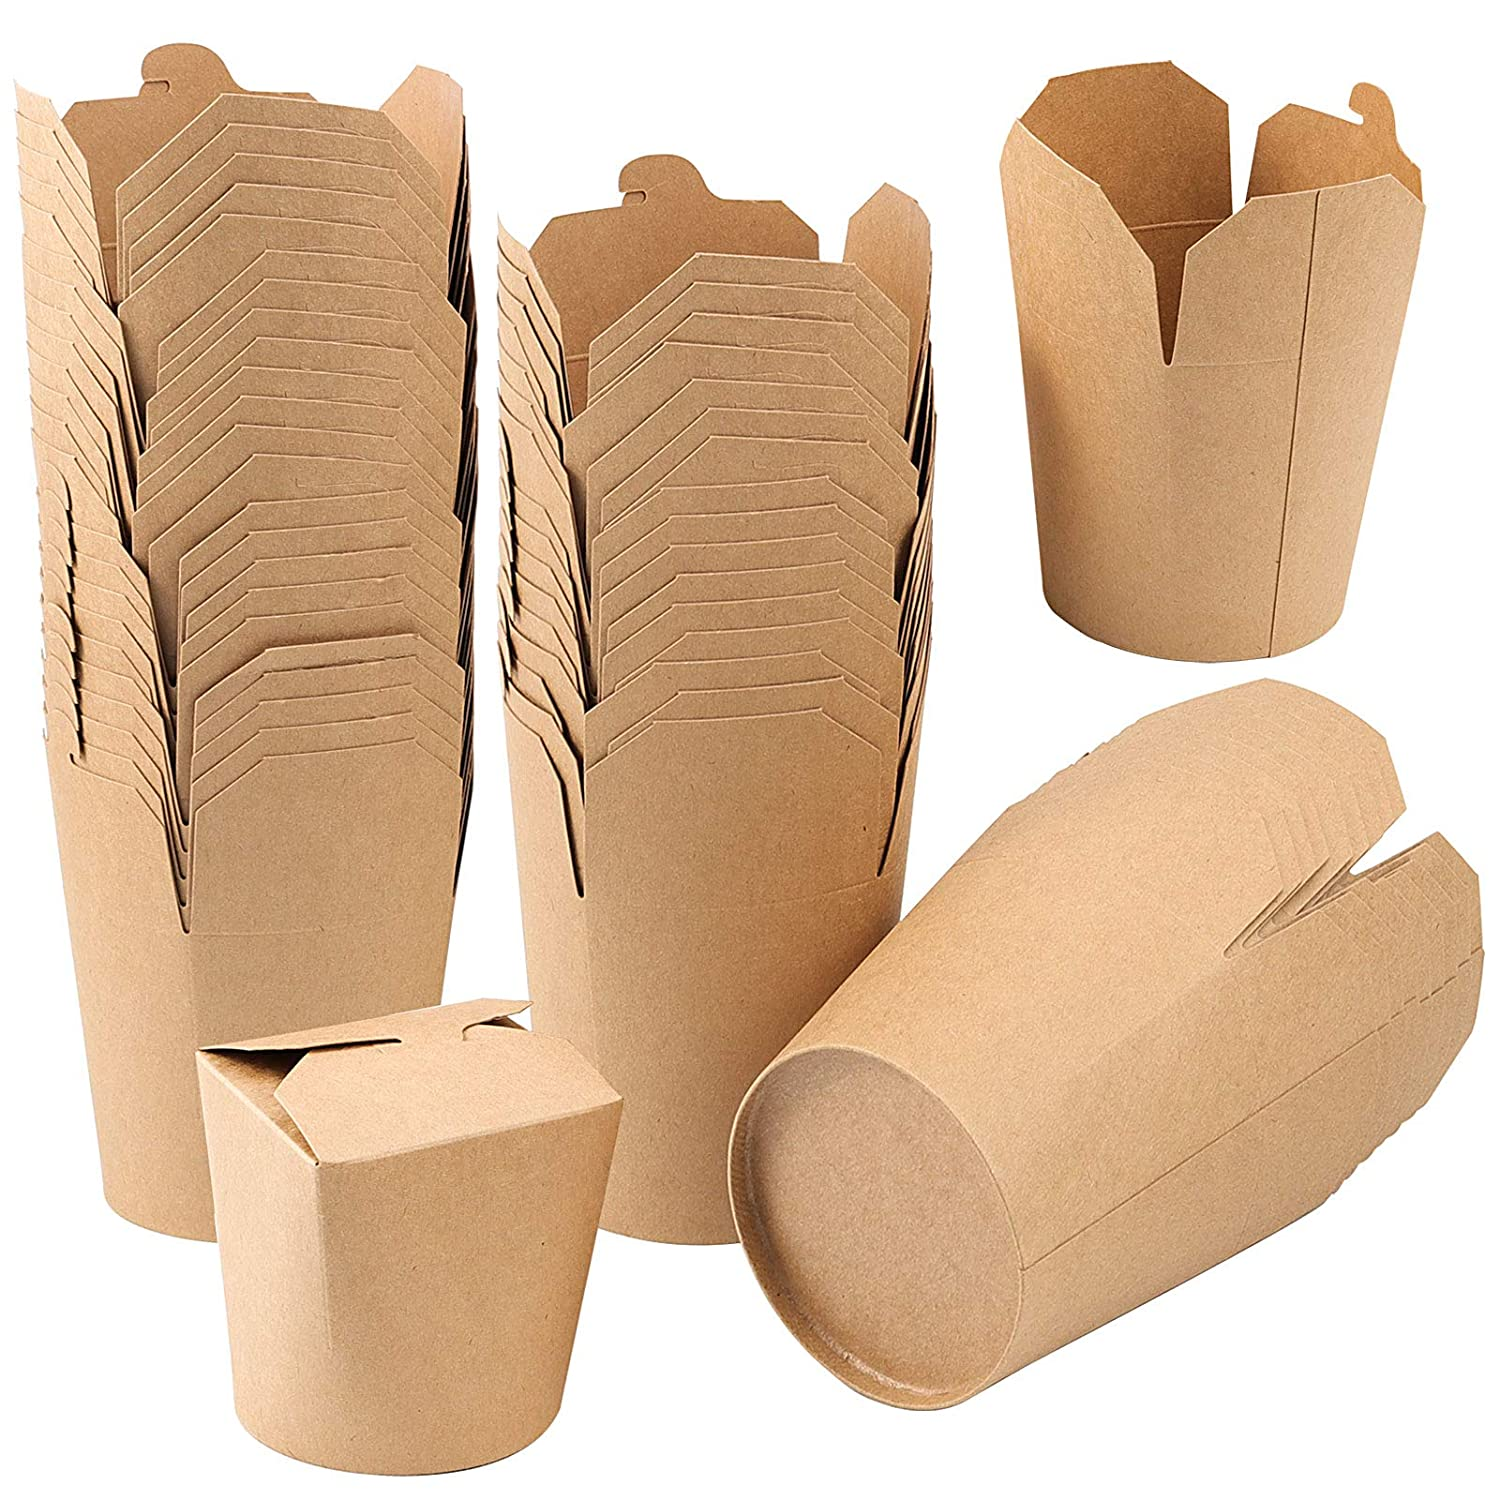 ZOENHOU 25 Pack 26 Oz Small Chinese Take Out Boxes, Leak and Grease Resistant Kraft Paper Takeout Food Containers, Stackable Microwaveable to Go Food Boxes for Party Favors, Lunch Packing